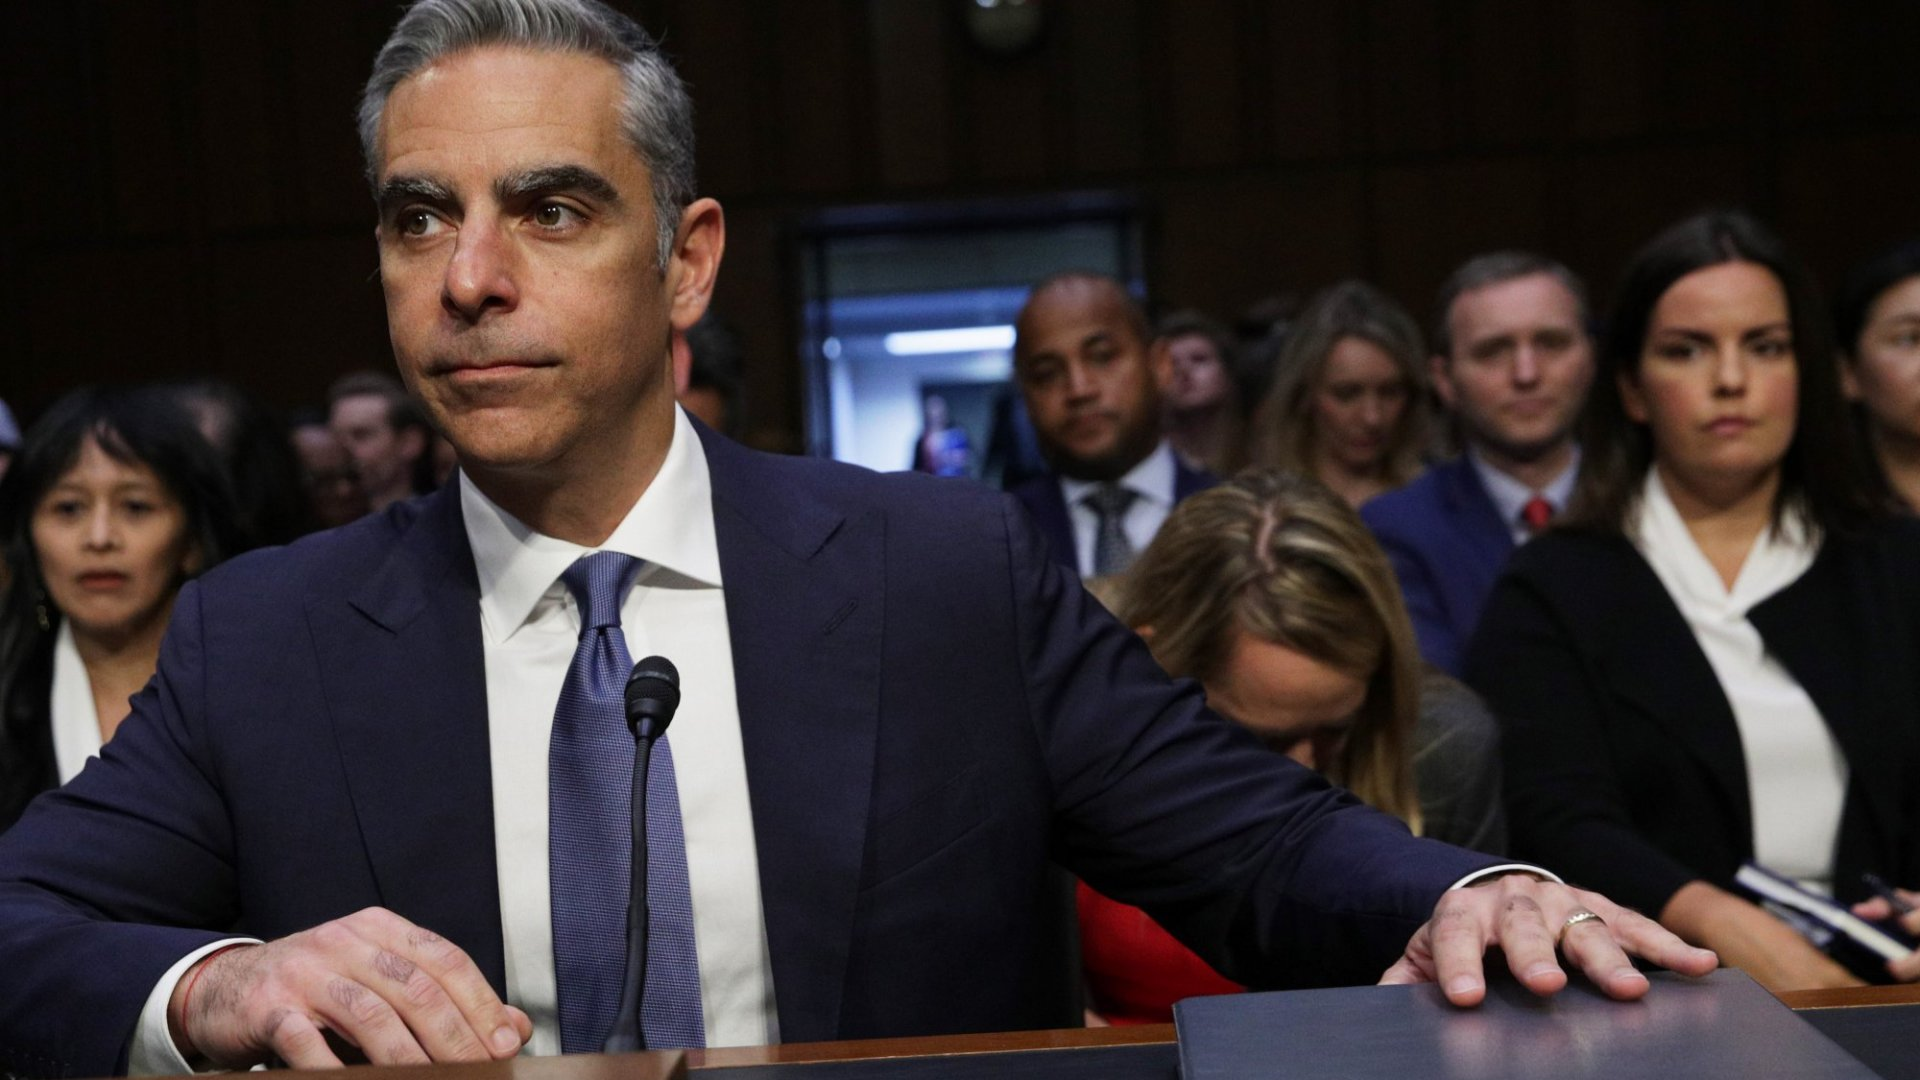 David Marcus, head of blockchain at Facebook, faced tough questions from lawmakers in a House hearing on Wednesday